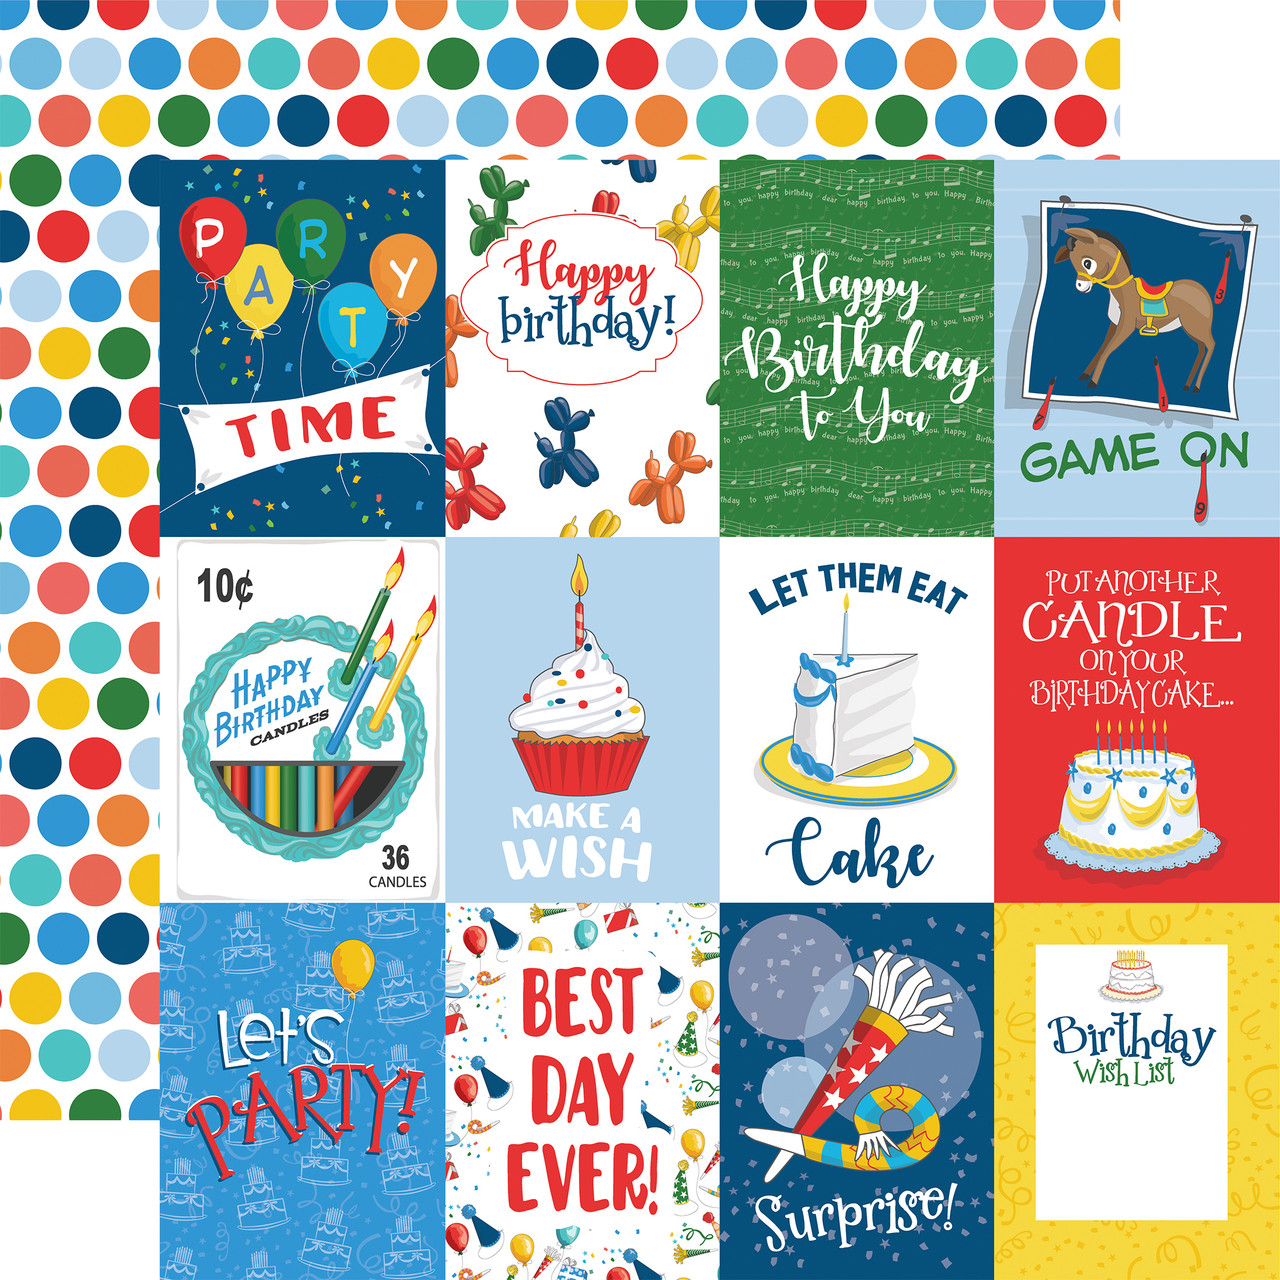 Let's Celebrate Collection 3X4 Journaling Cards 12 x 12 Double-Sided Scrapbook Paper by CartaLet's Celebrate Collection 3X4 Journaling Cards 12 x 12 Double-Sided Scrapbook Paper by Carta Bella Bella